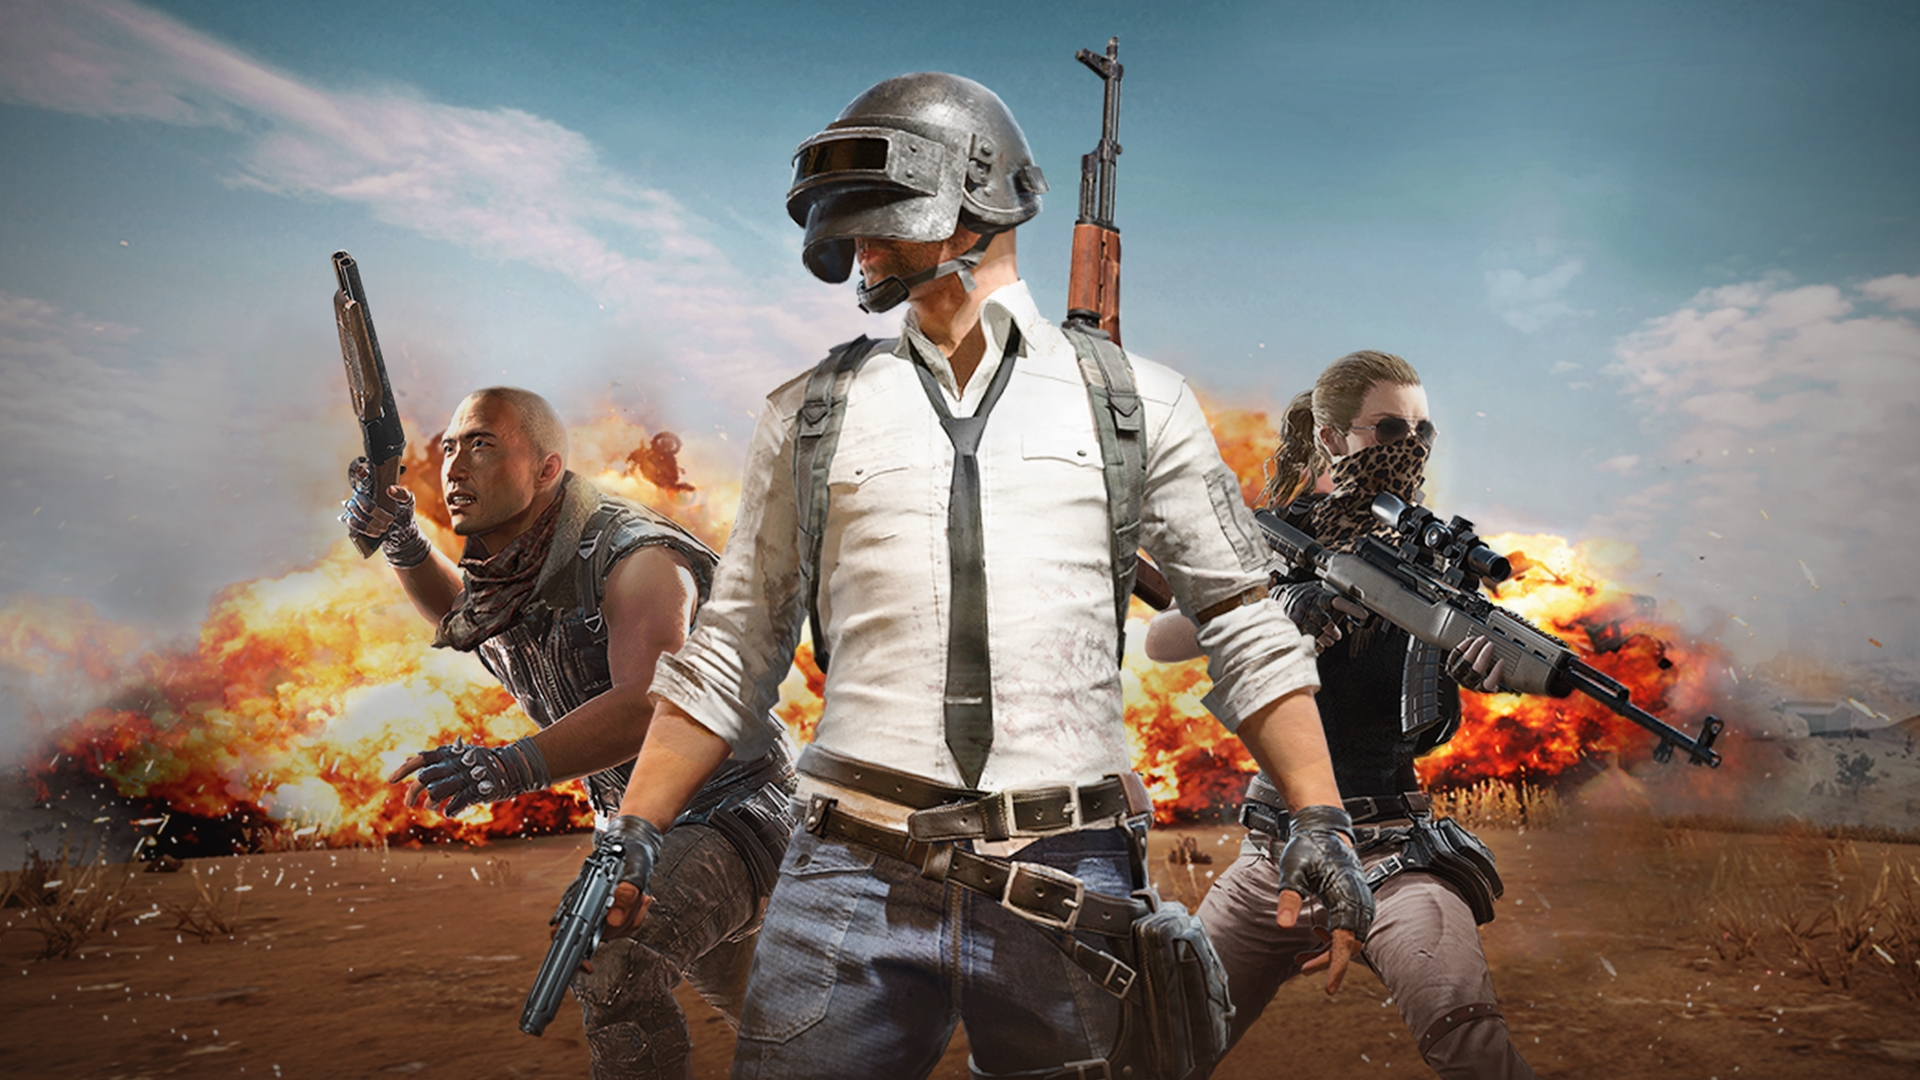 PlayerUnknown's Battlegrounds - coming soon to PS4?